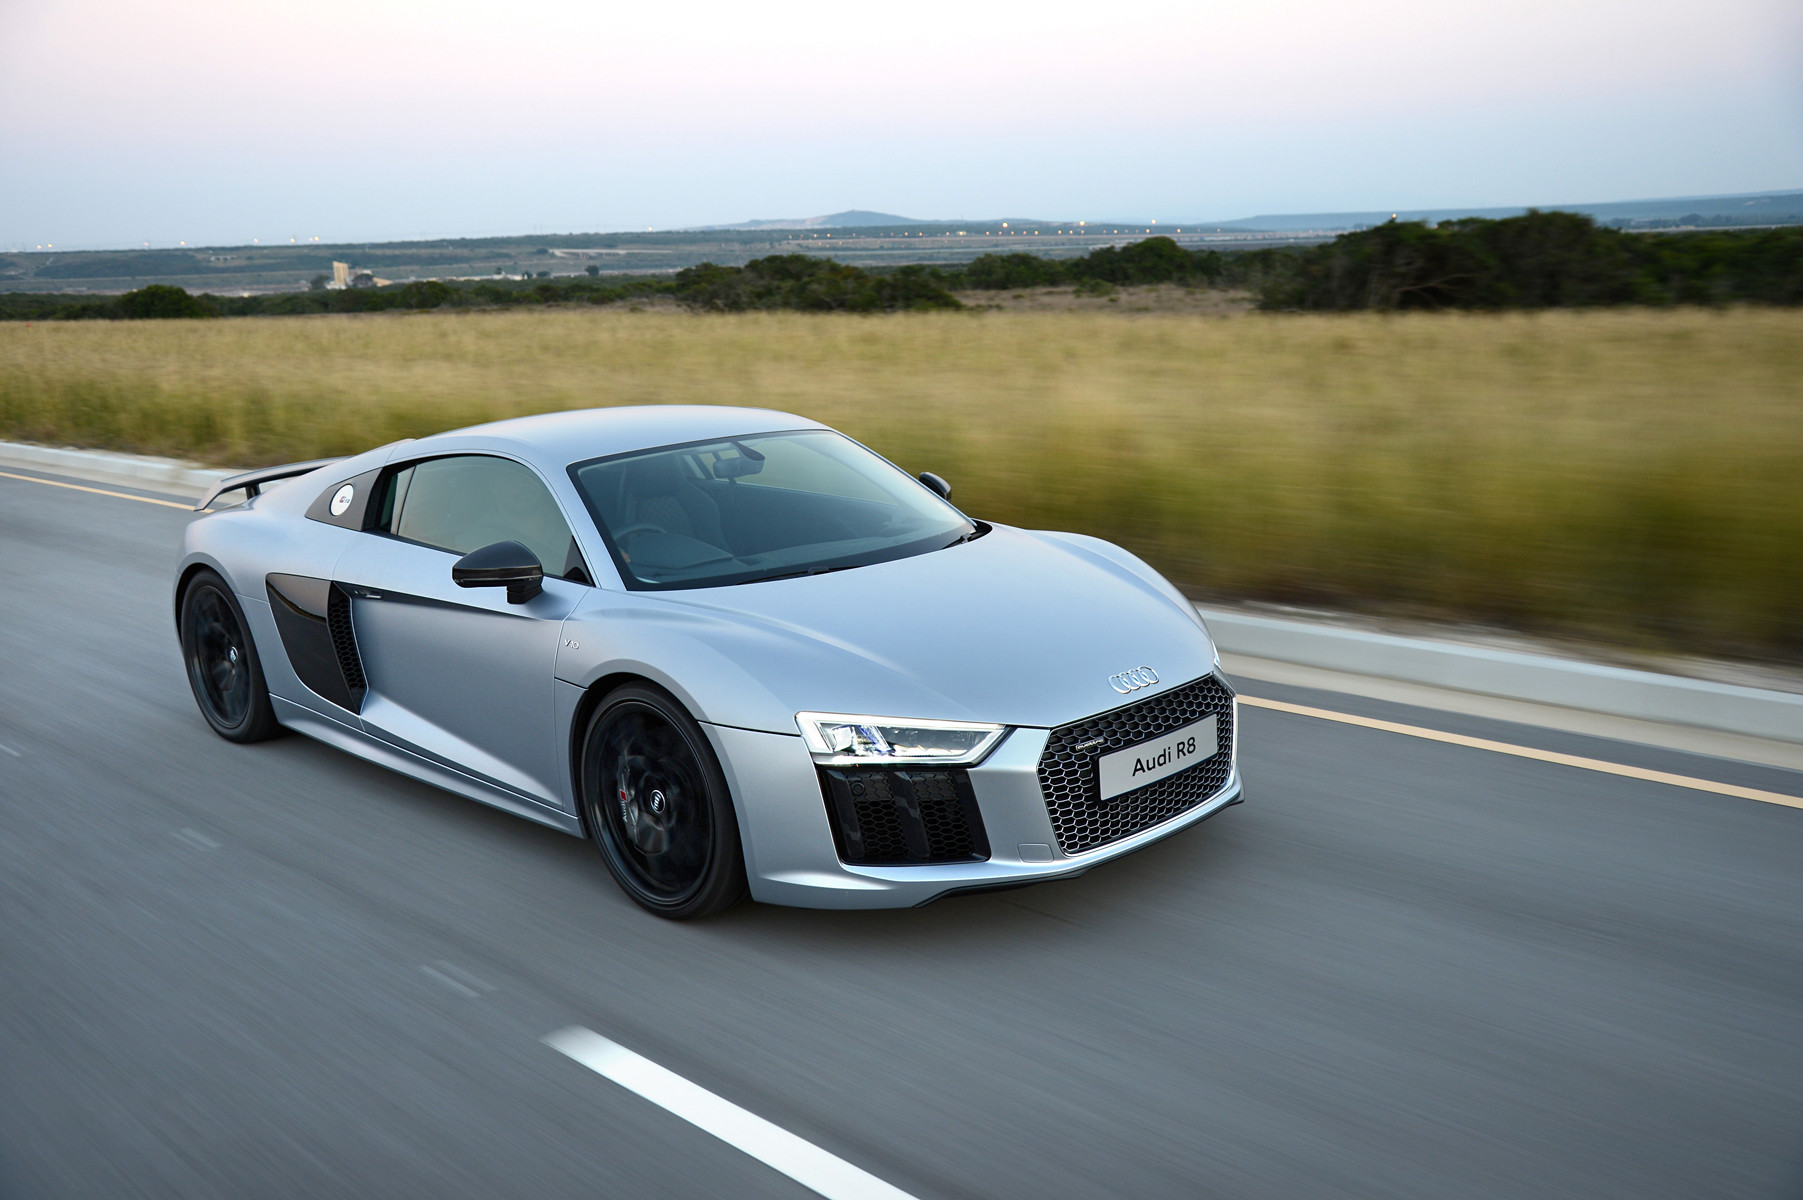 events new show magazine spyder by revealed york motor car audi at shows news